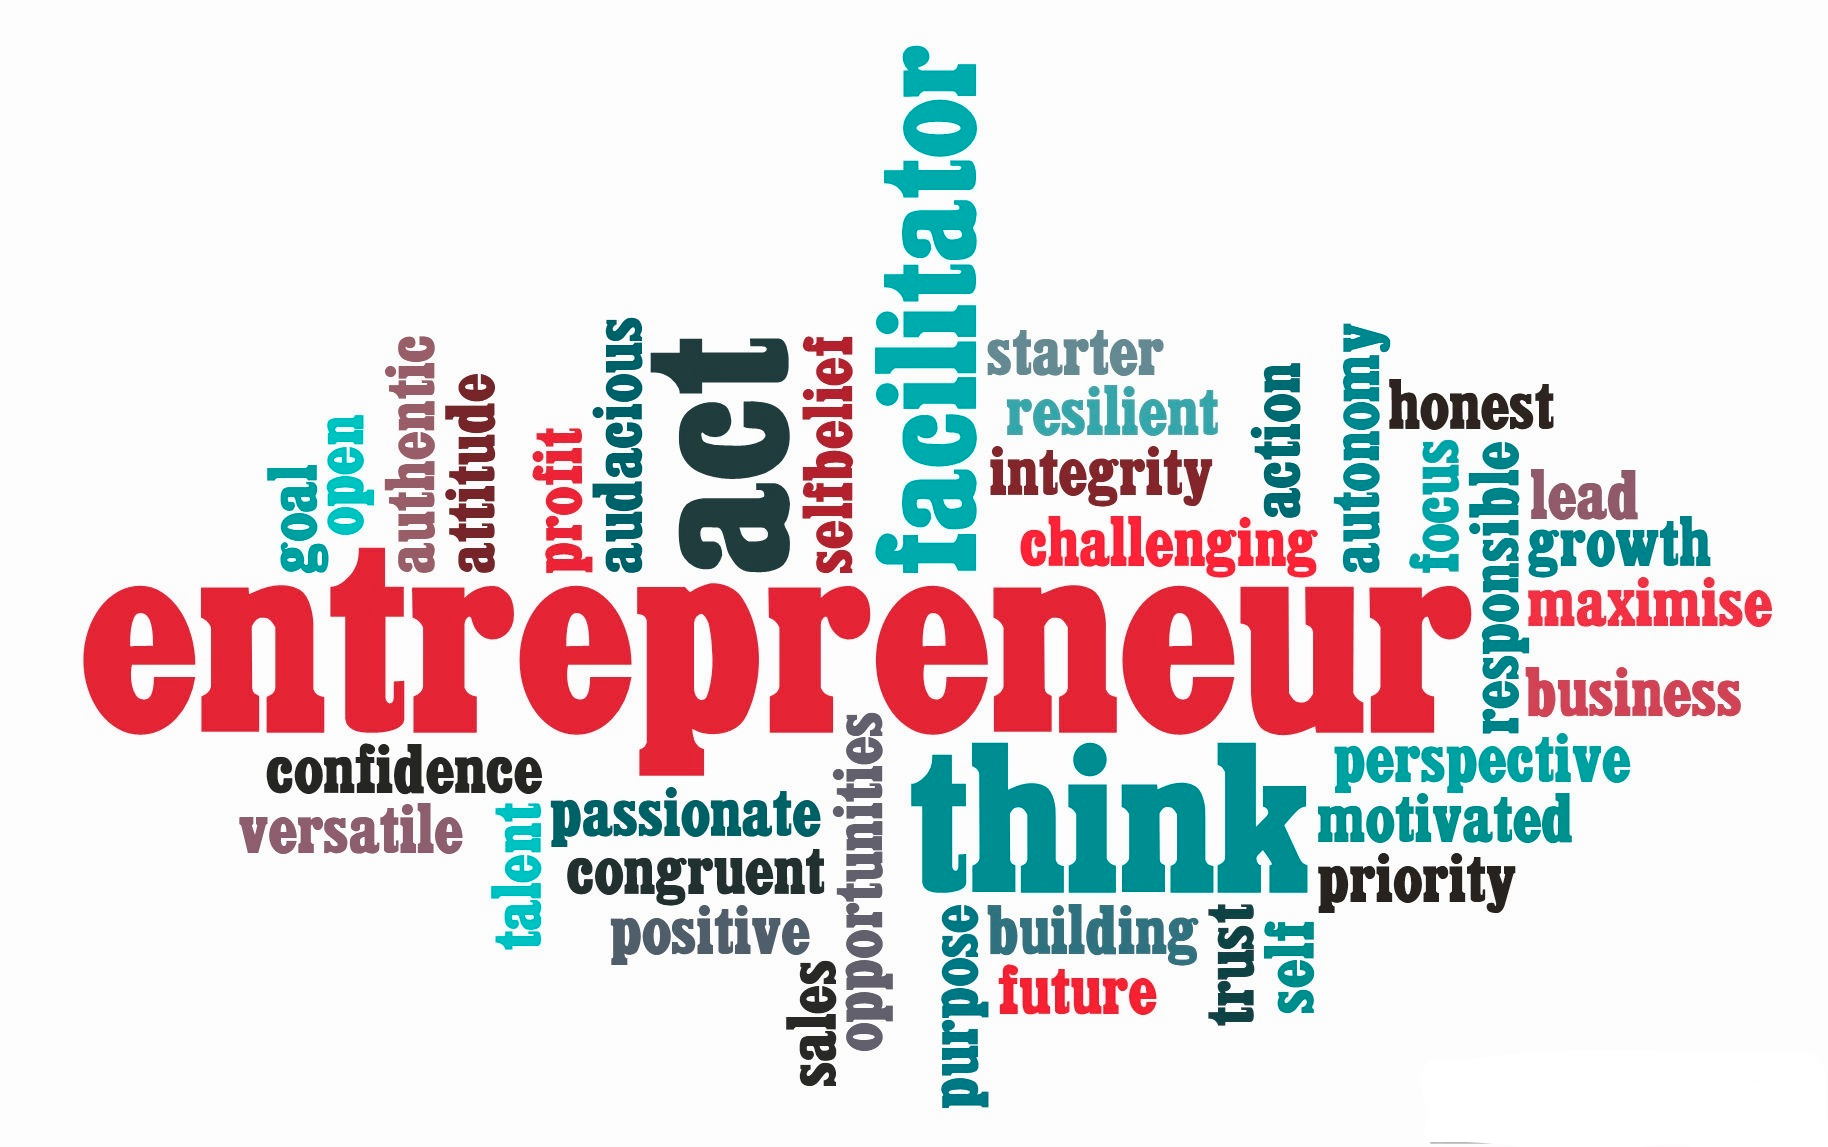 home entrepreneurship research guides at new york university this guide is a collection of resources for those an interest in entrepreneurship and starting their own business